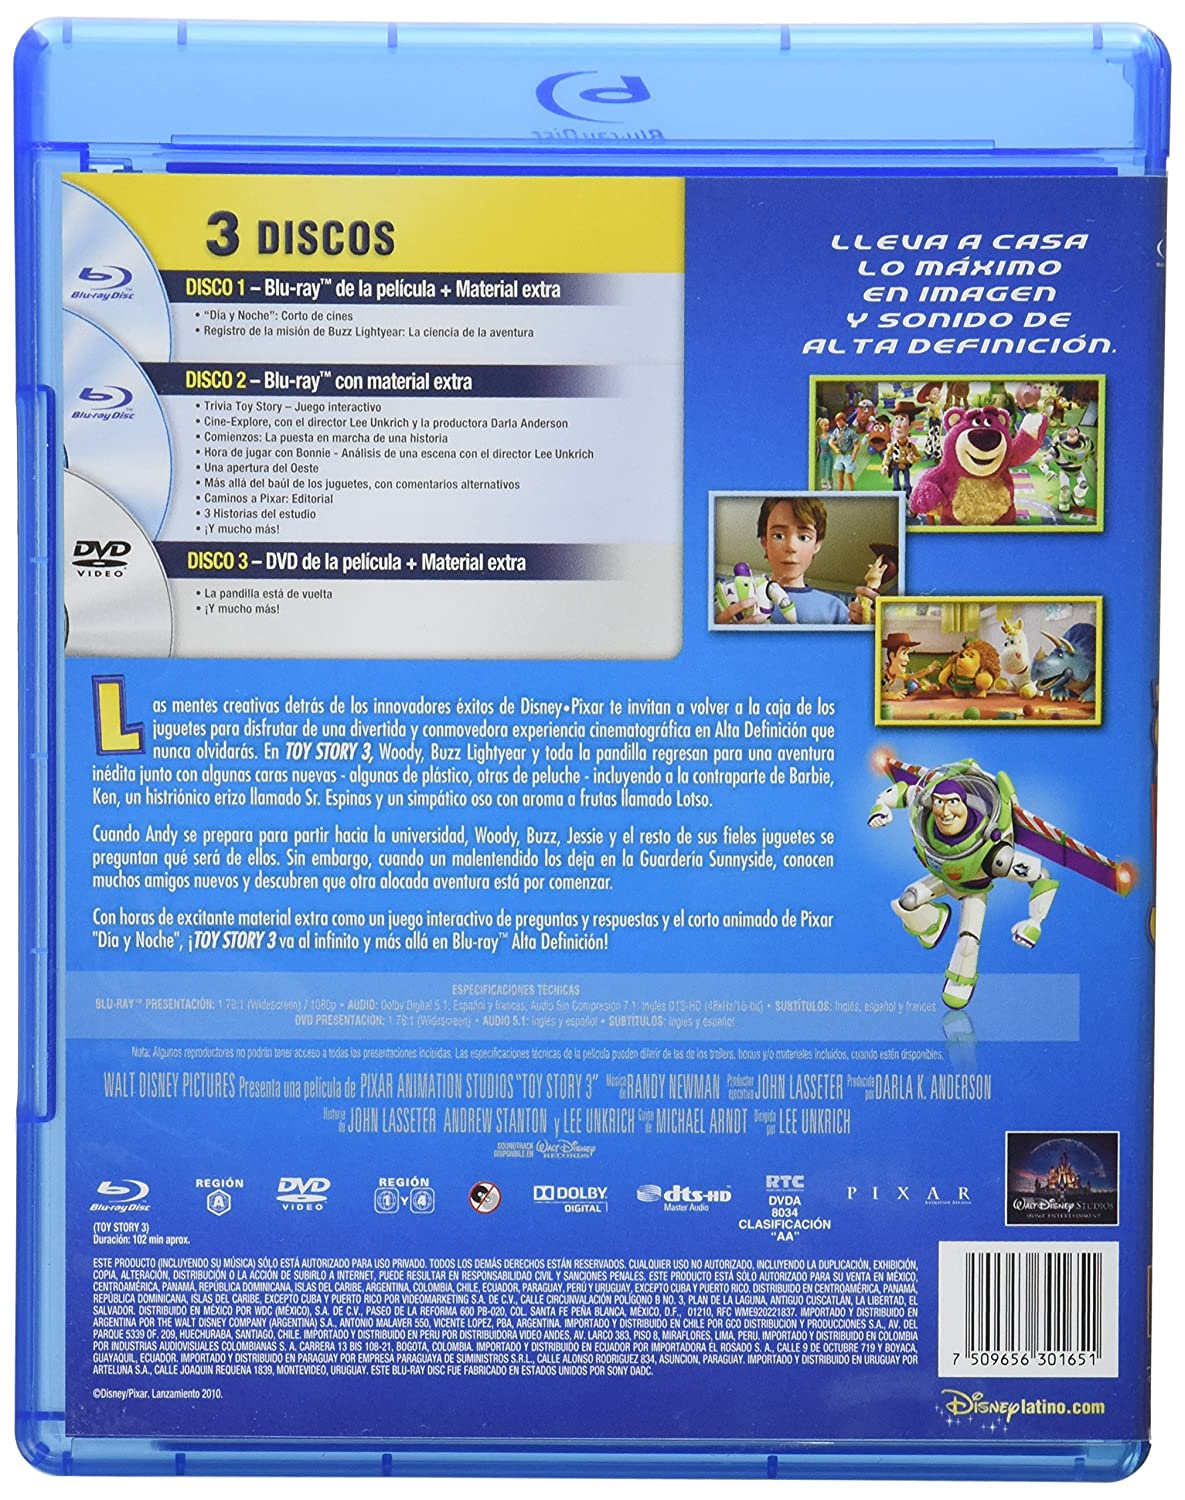 Amazon.com: Toy Story 3 : Spanish Audio Combo (2 Blu-ray + 1 DVD) Import: Movies & TV